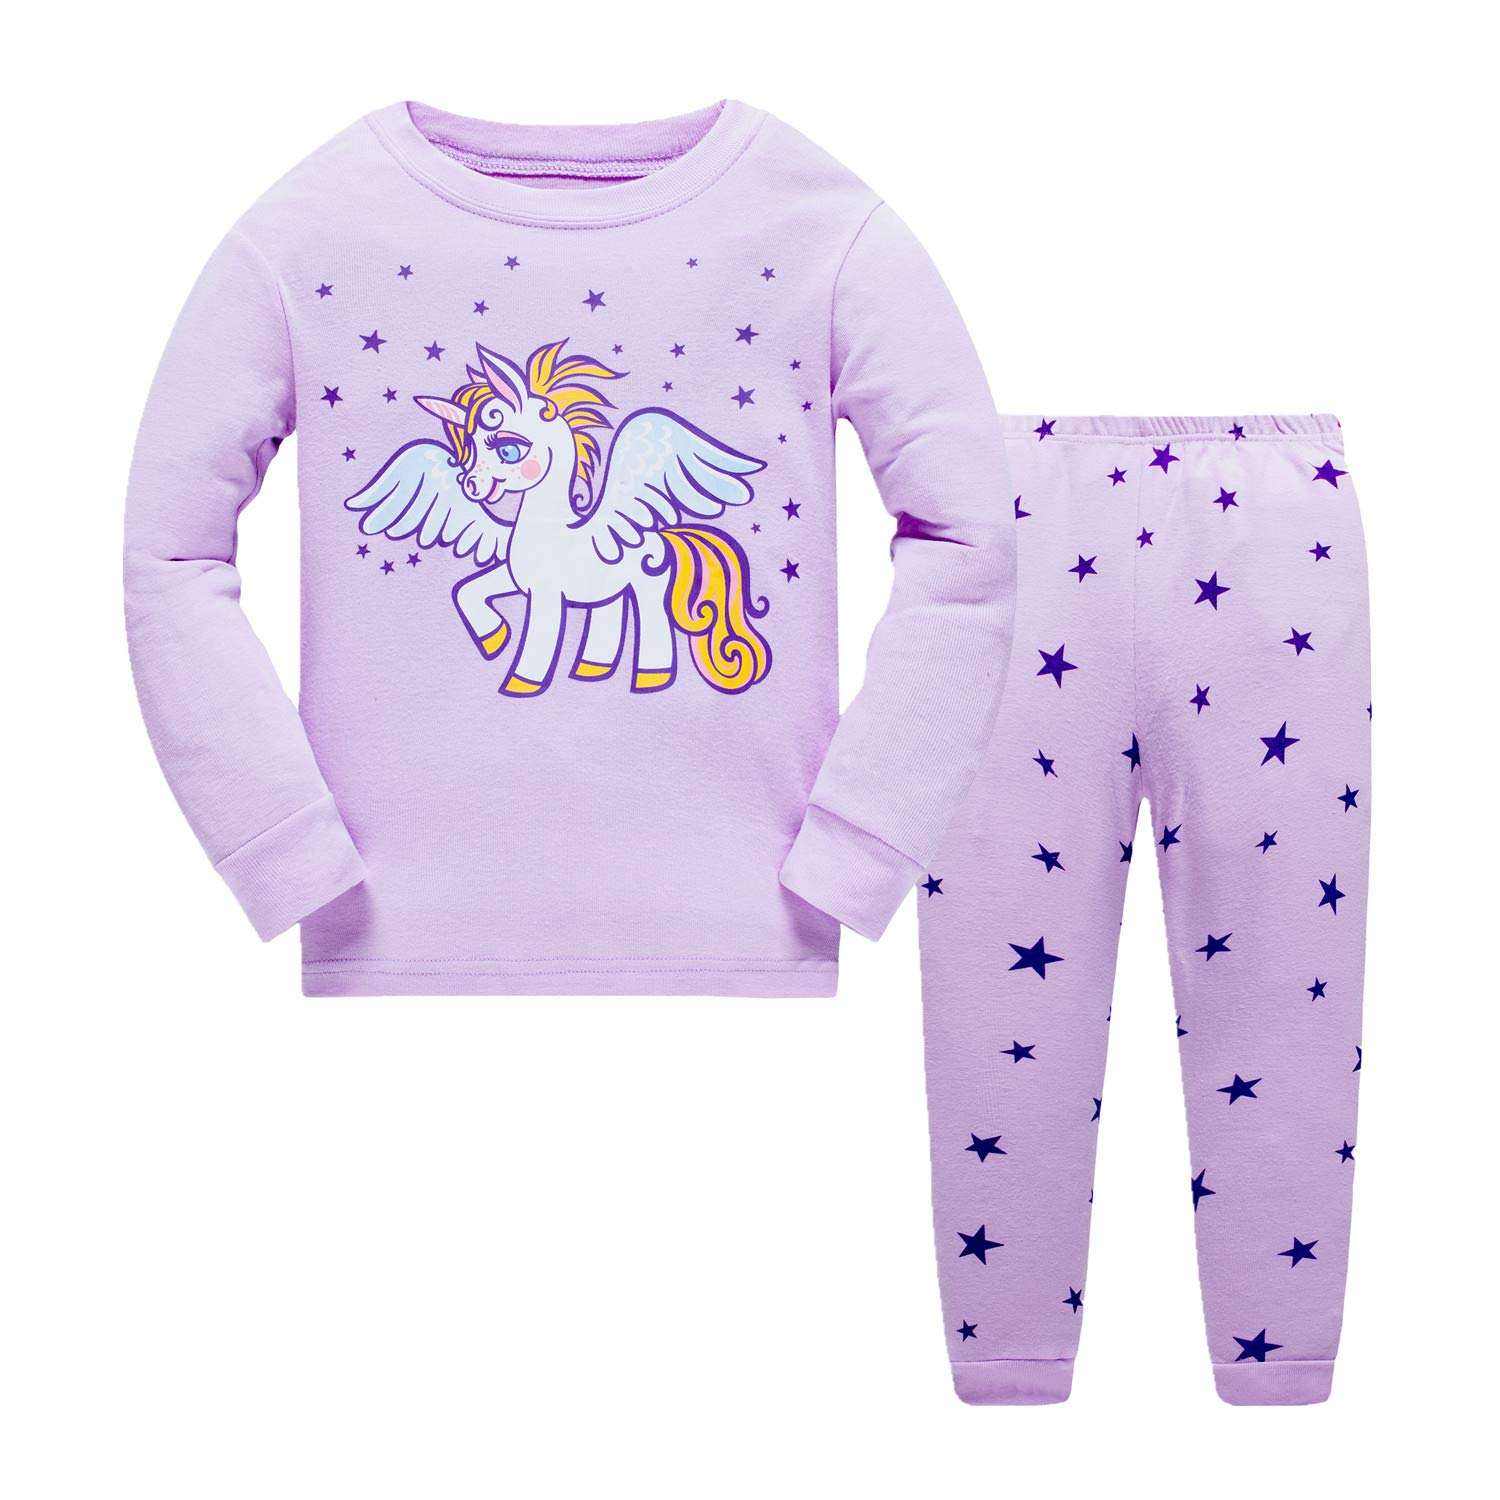 Girls Pajamas Unicorn Little Kids 100% Cotton Dolphin PJs 2 Piece Princess Sleepwear Set